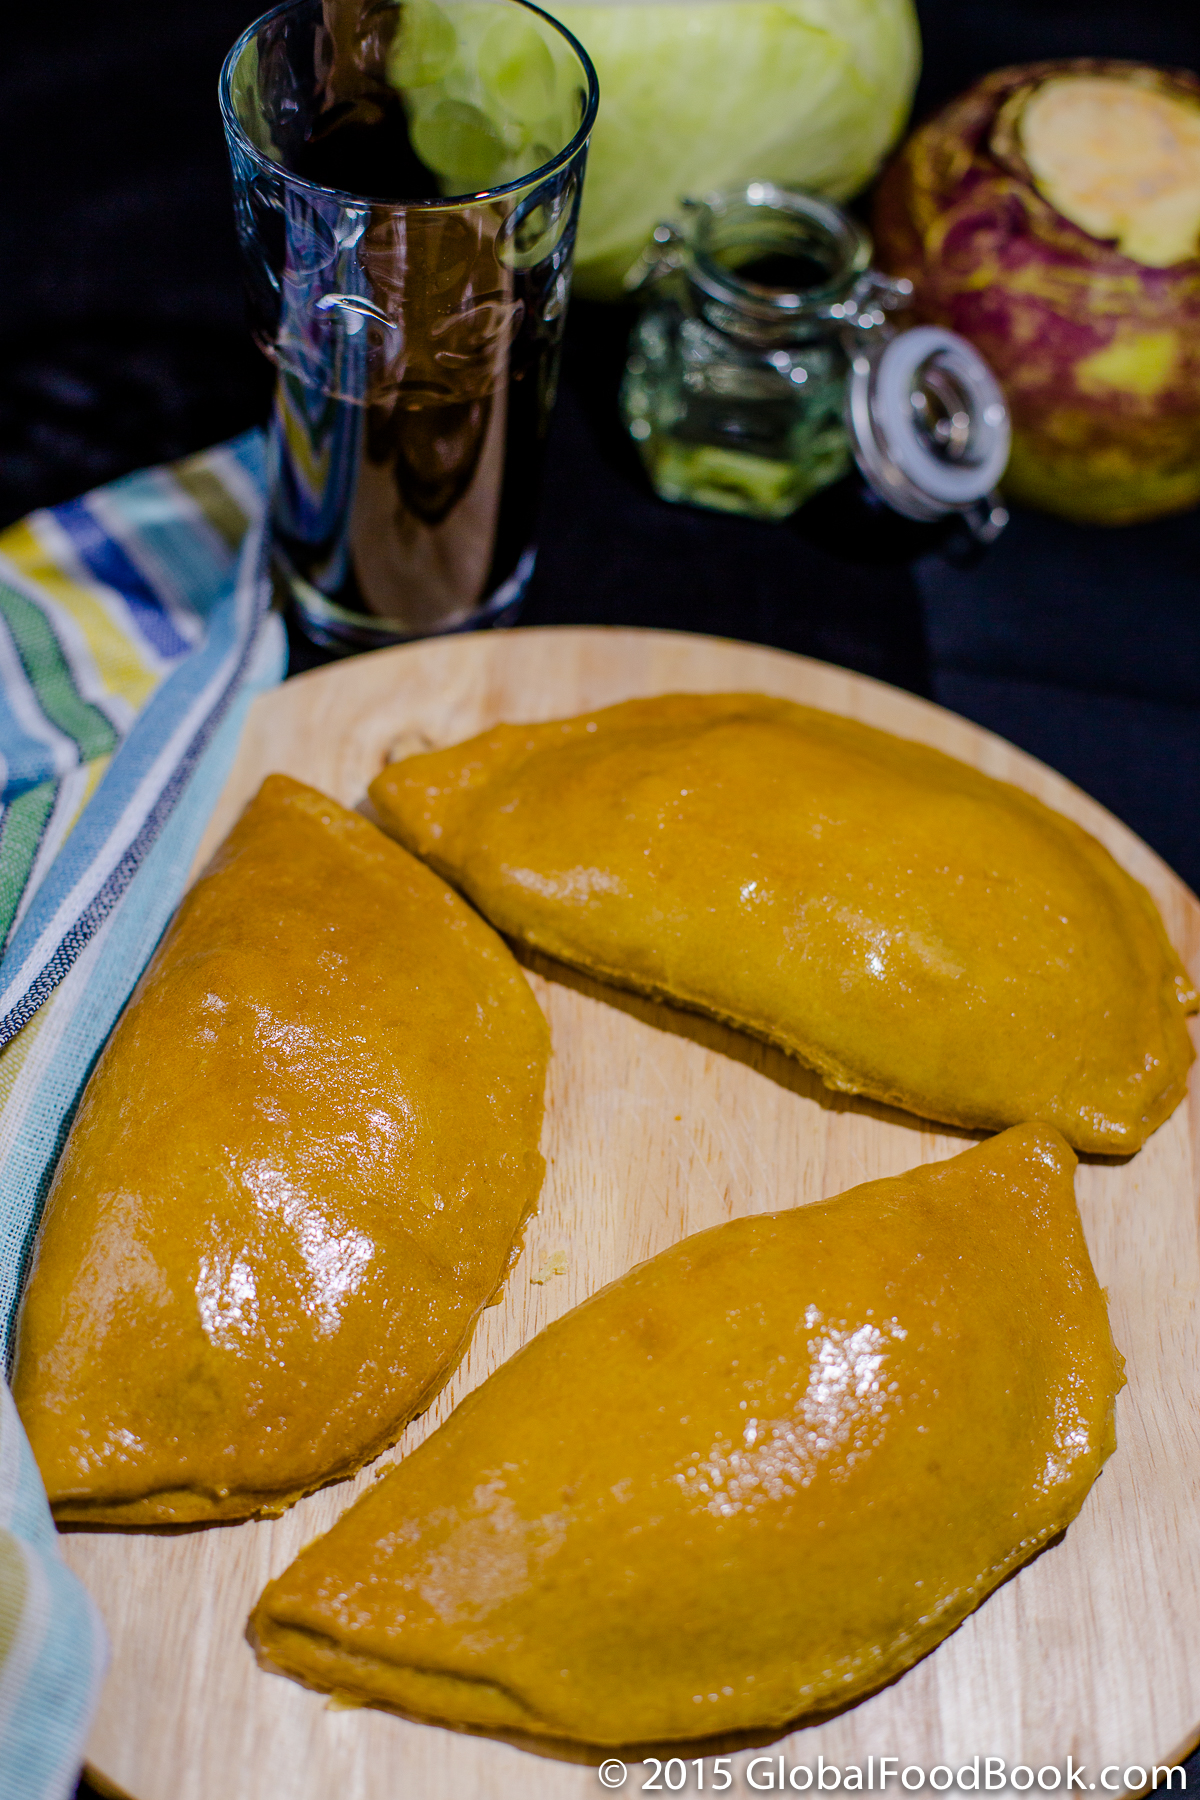 CHICKEN PASTIES